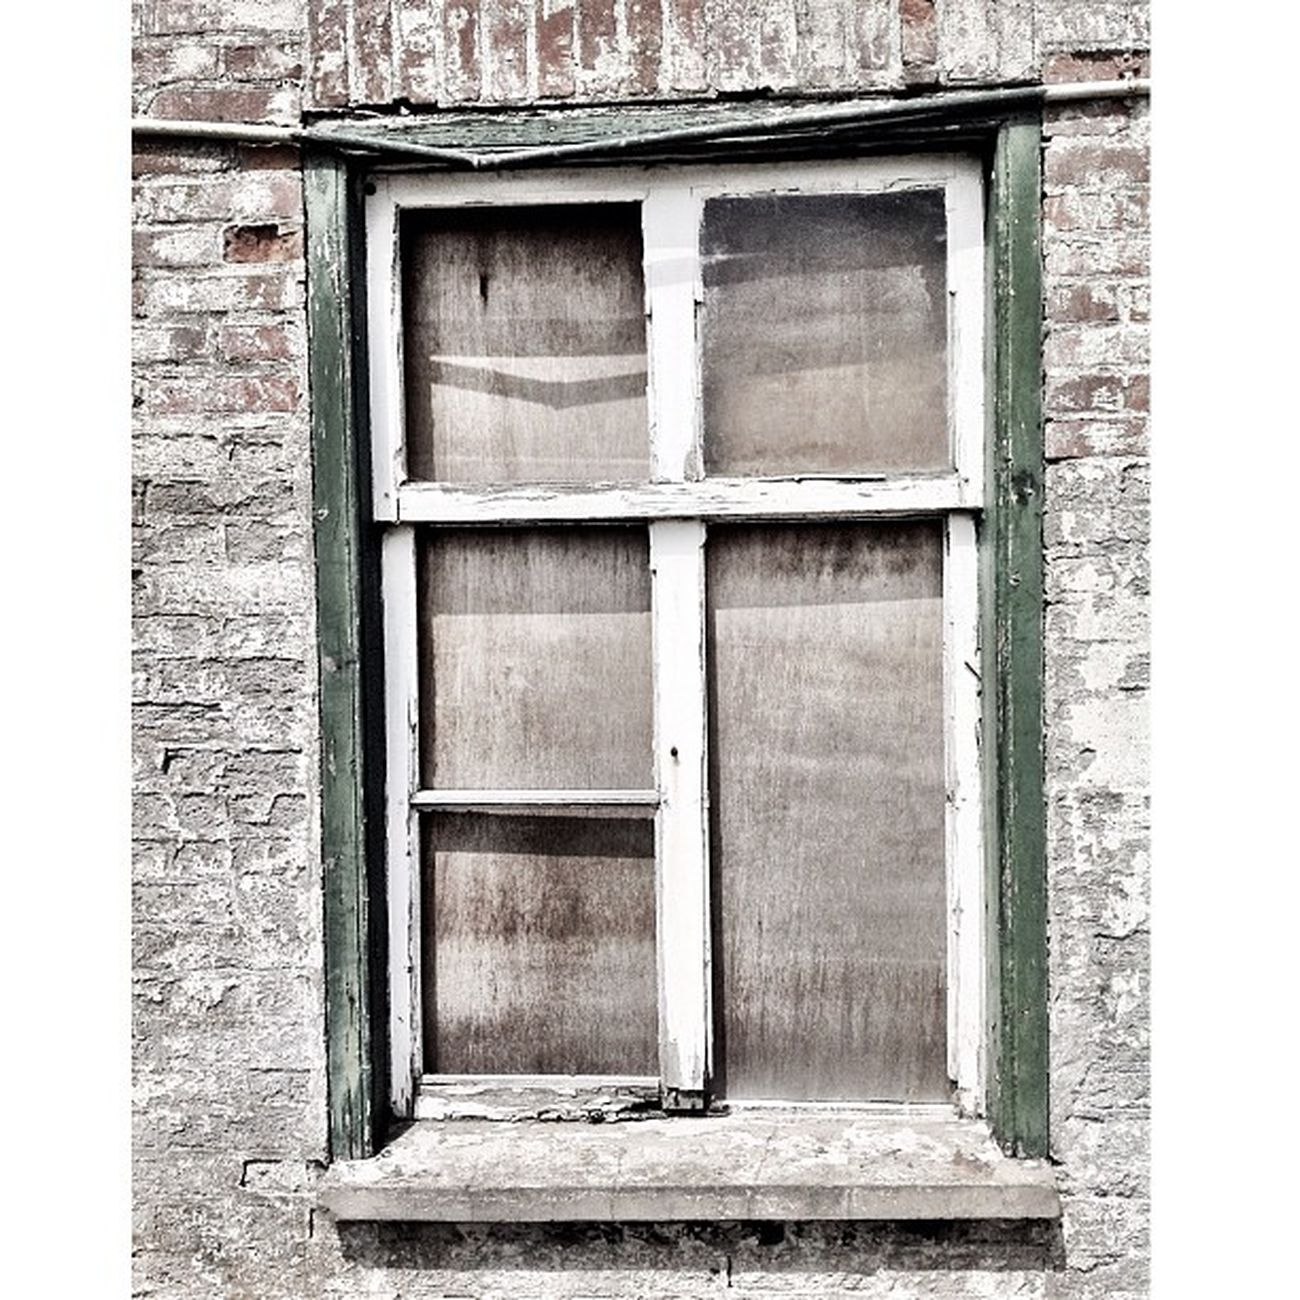 Hello friends, If you like snapping urbex, urban, cloudscapes and bw shots Instaaaaah Urbexphotography Windows Igdungeon Minimal Detailsofdecay Window Windowsill Minimalism Royalsnappingartists Texture Igville Urbex Simplistic Simplicity Urbexjunkies Minimalove Urbanexploring Minimalist Instaxplore Urbandecay Texturama Texturextreme Igville_decay Filthyfeeds Urbexers Windowshotwednesday Windowsonwindows Minimalistics